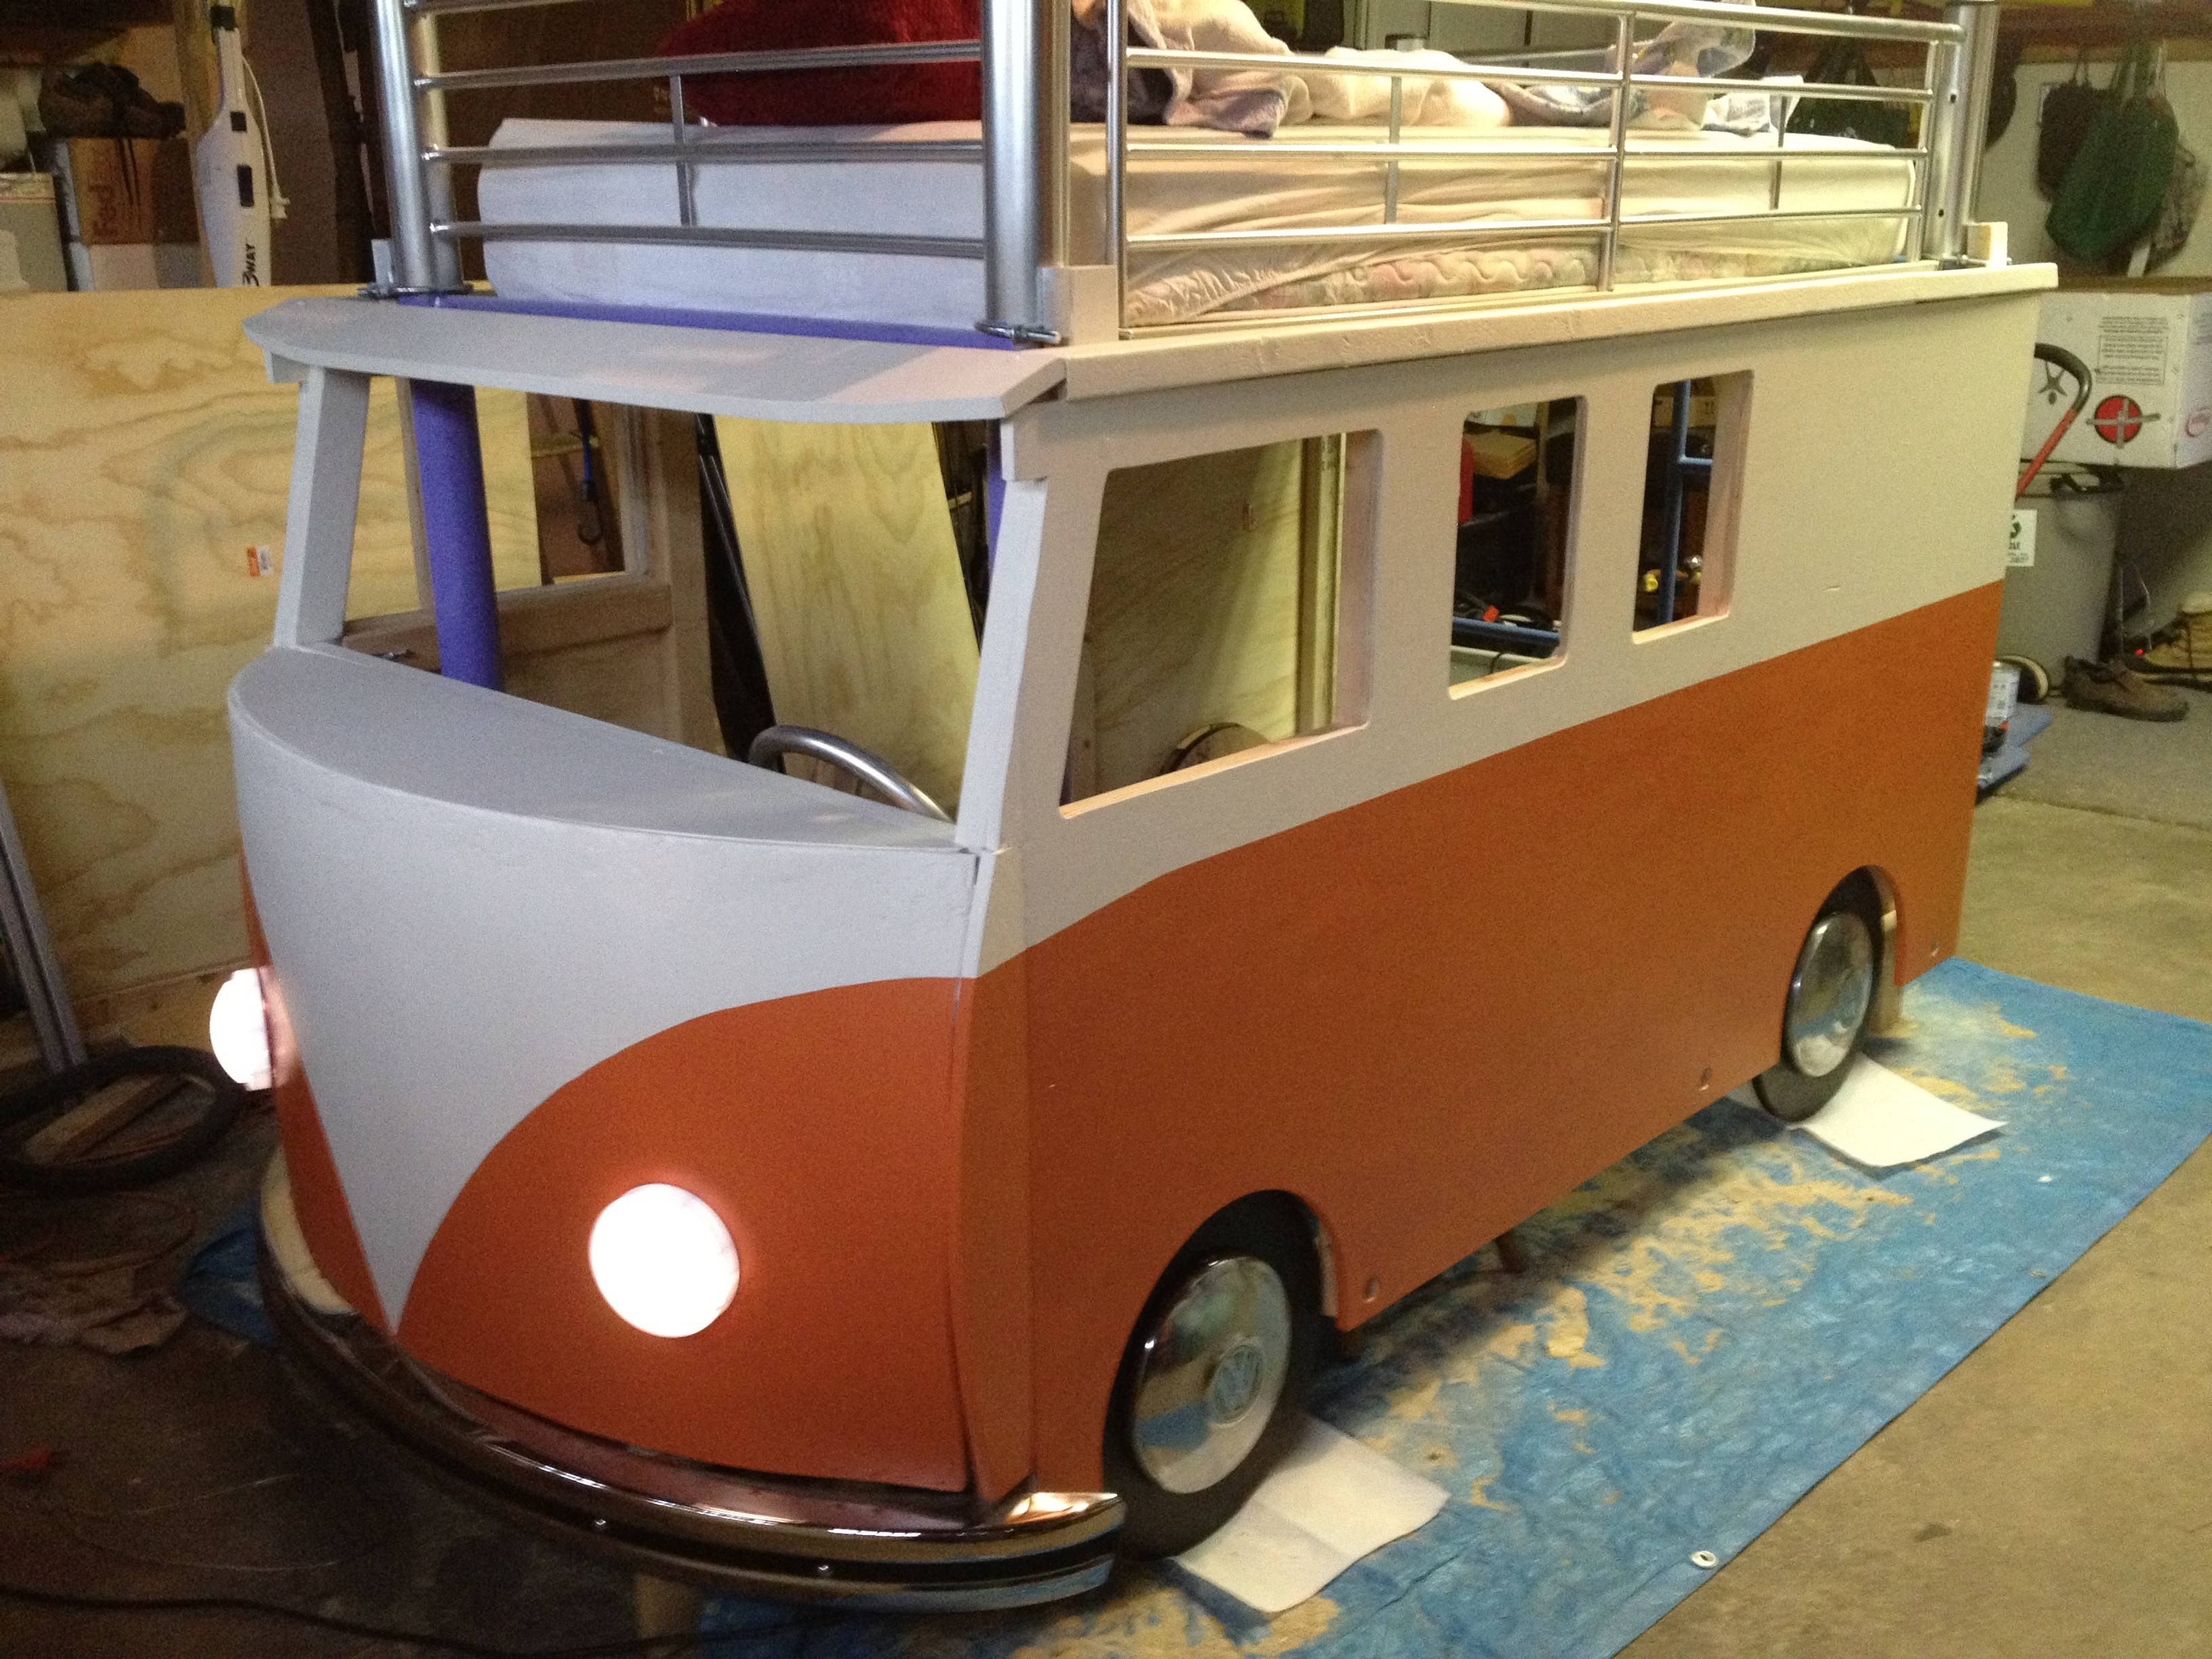 Best Dad Ever Builds Vw Bus Bed For 3 Year Old Daughter Autoevolution